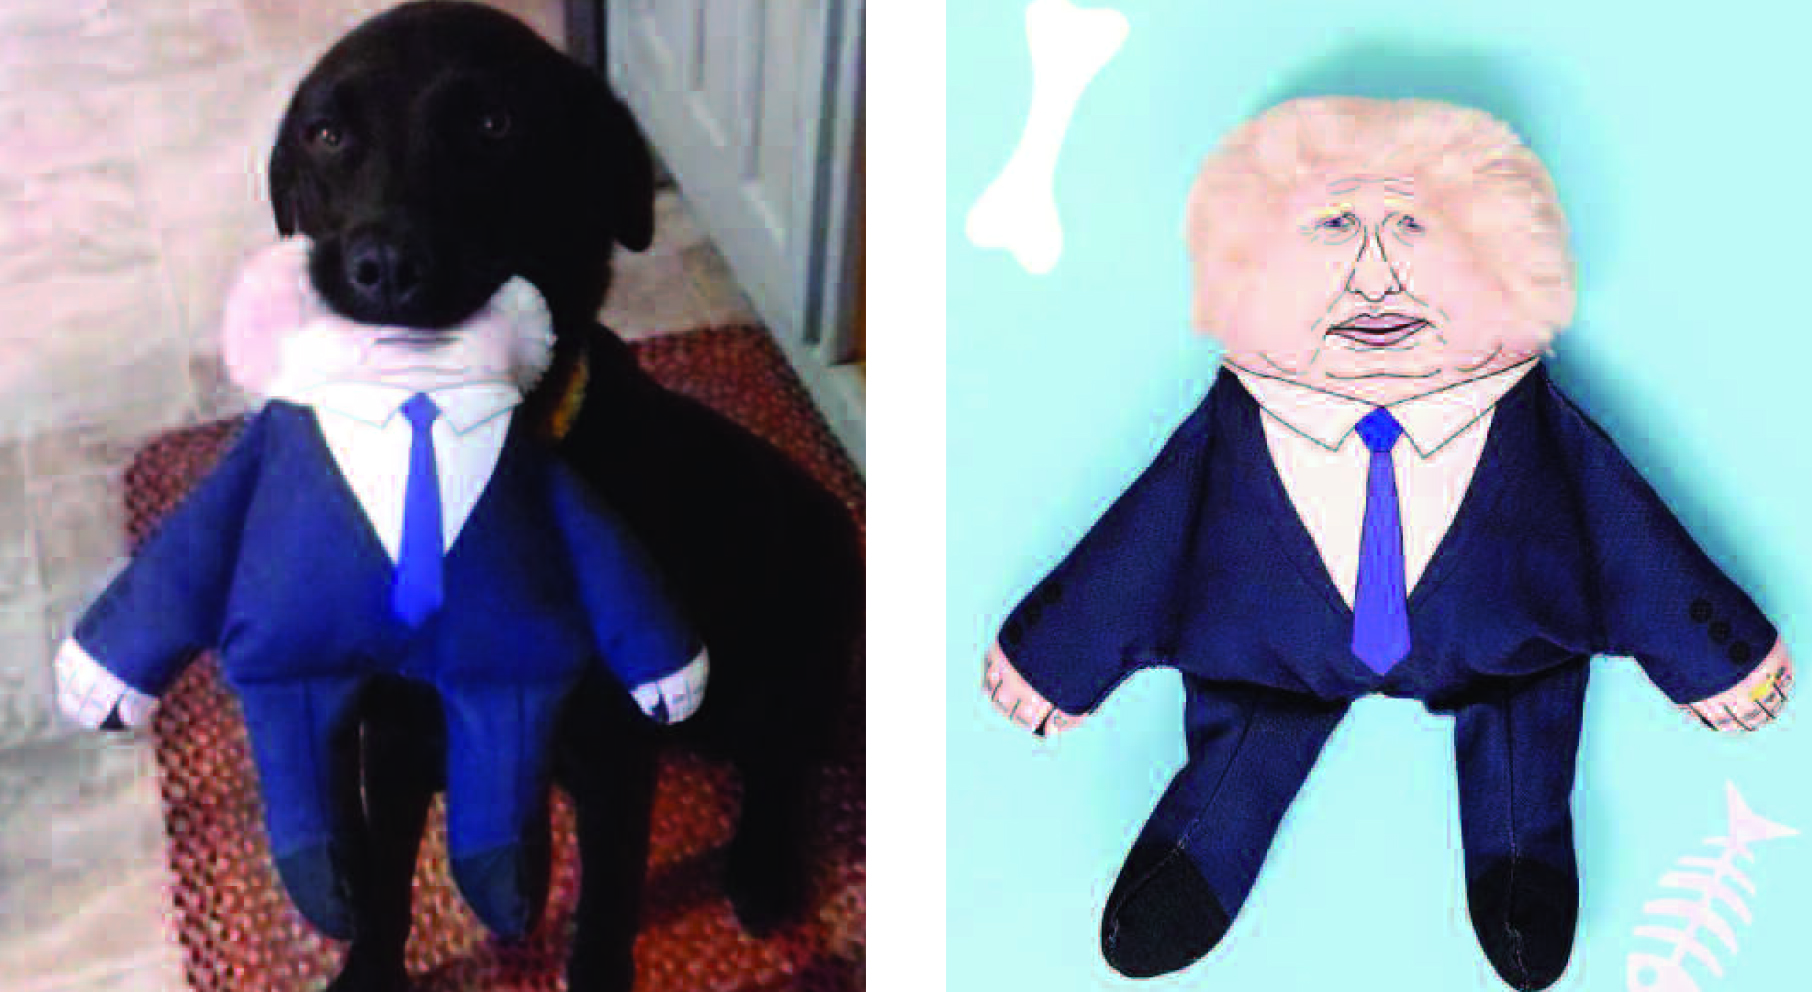 Above: A timely post on Scribbler's Instagram feed included a shot of a dog with a Boris Johnson dog toy in its mouth!